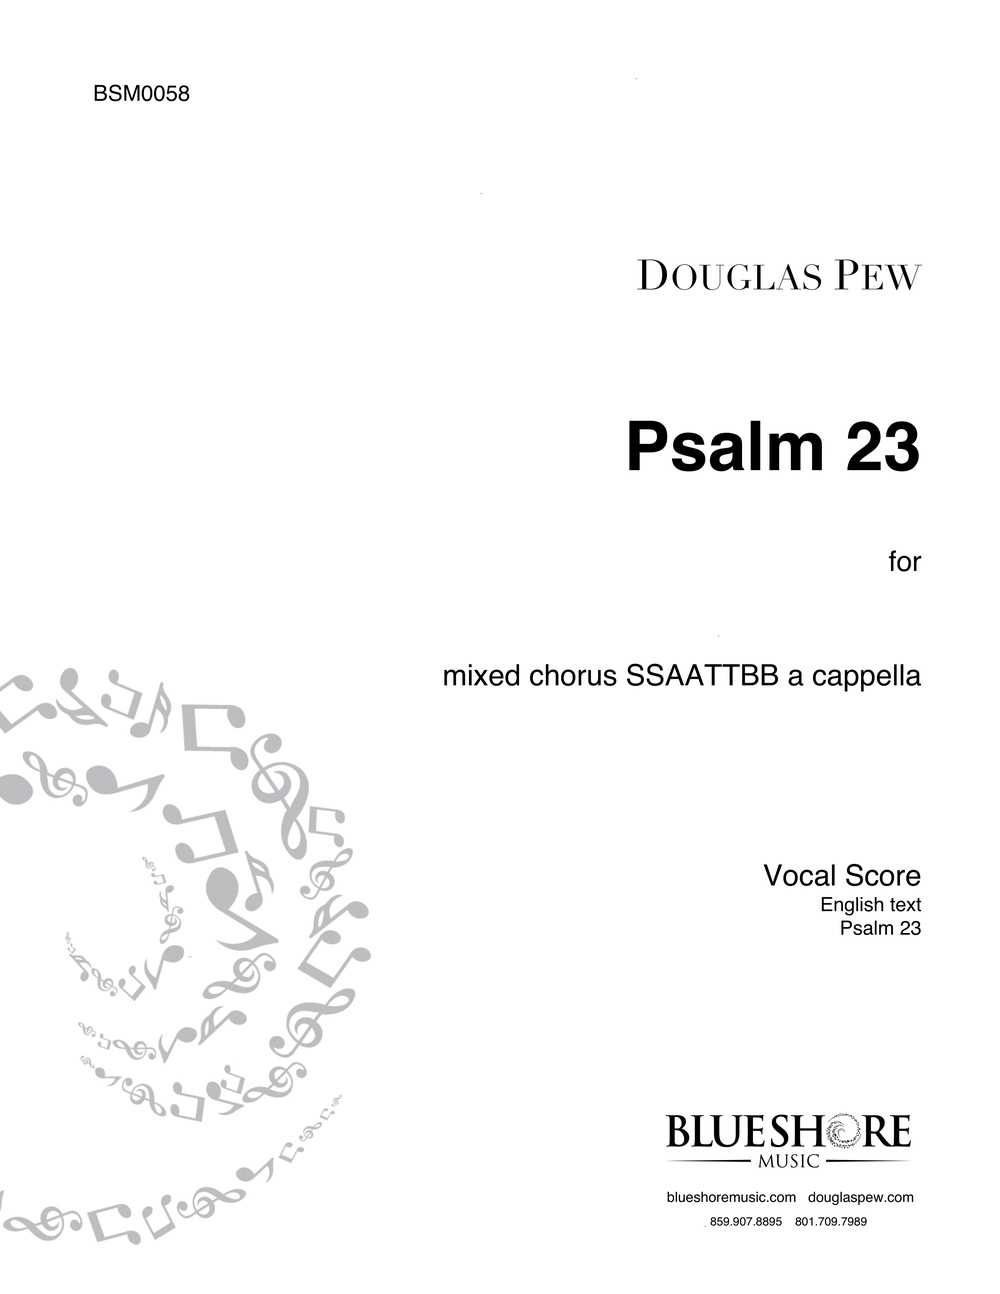 Psalm 23 - SSAATTBB - *COMING SOON*